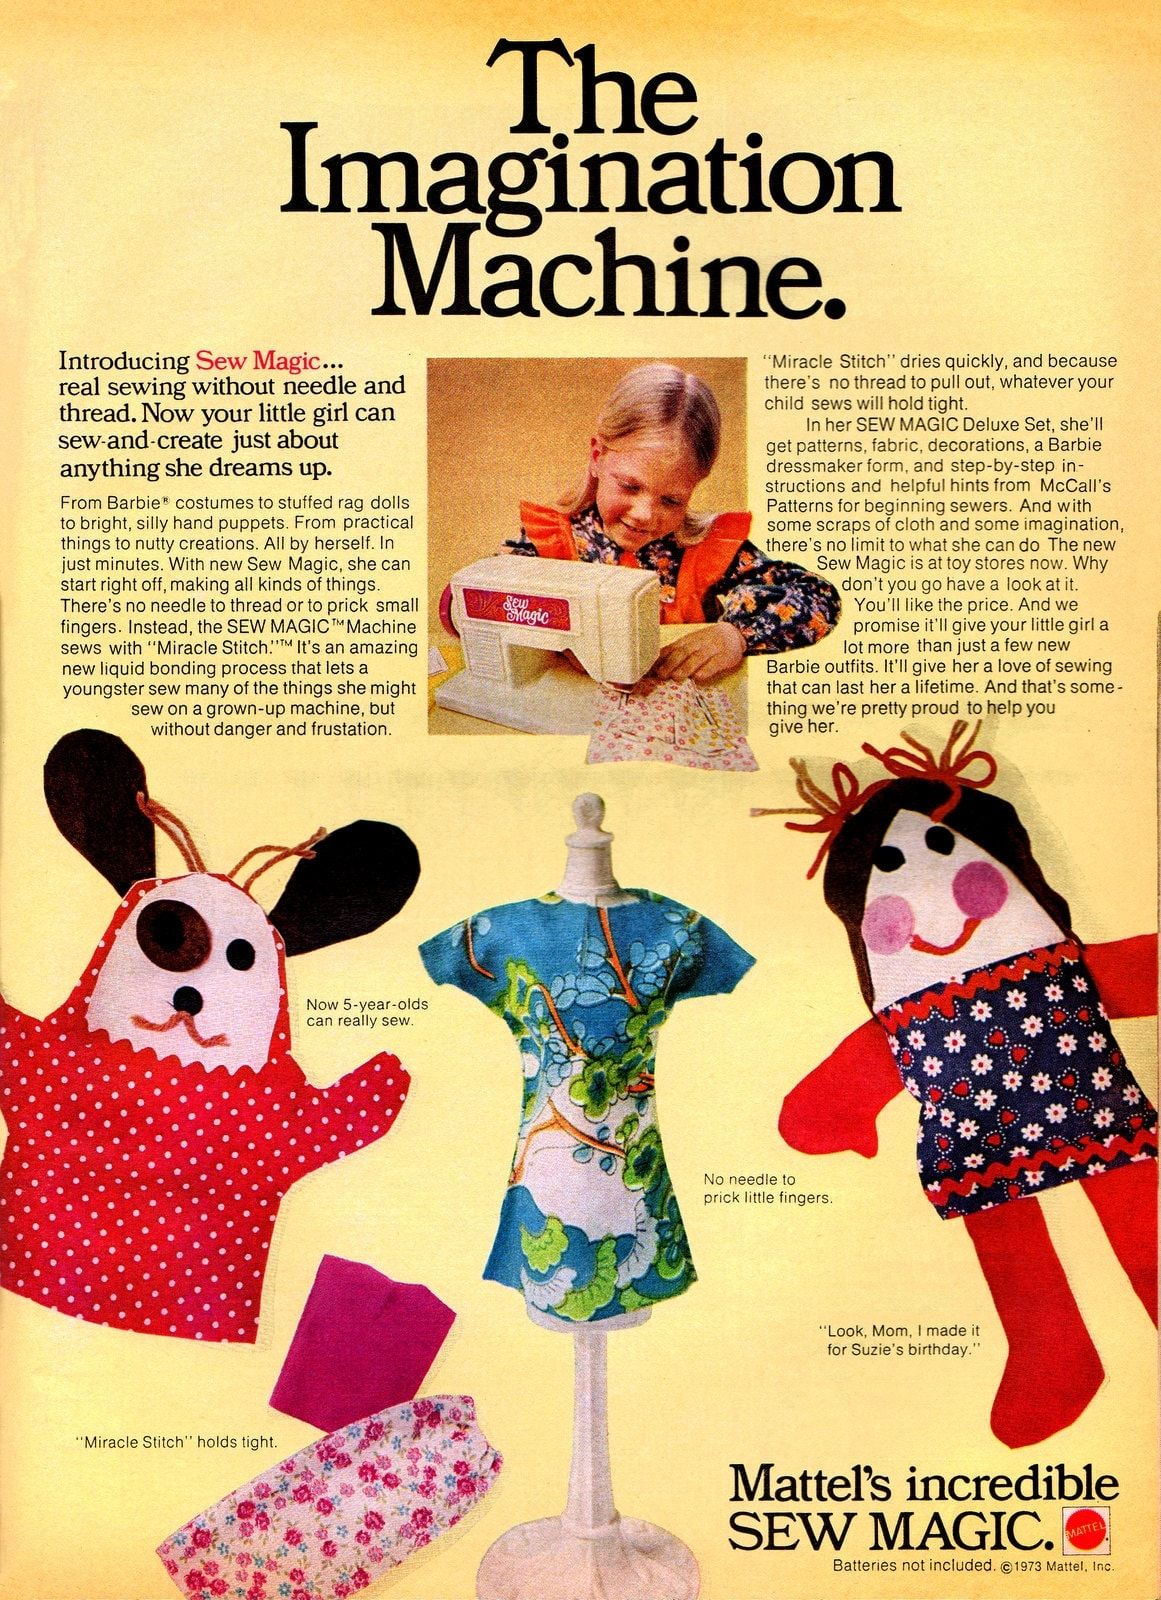 Mattel's Sew Magic sewing machines for kids - 1973